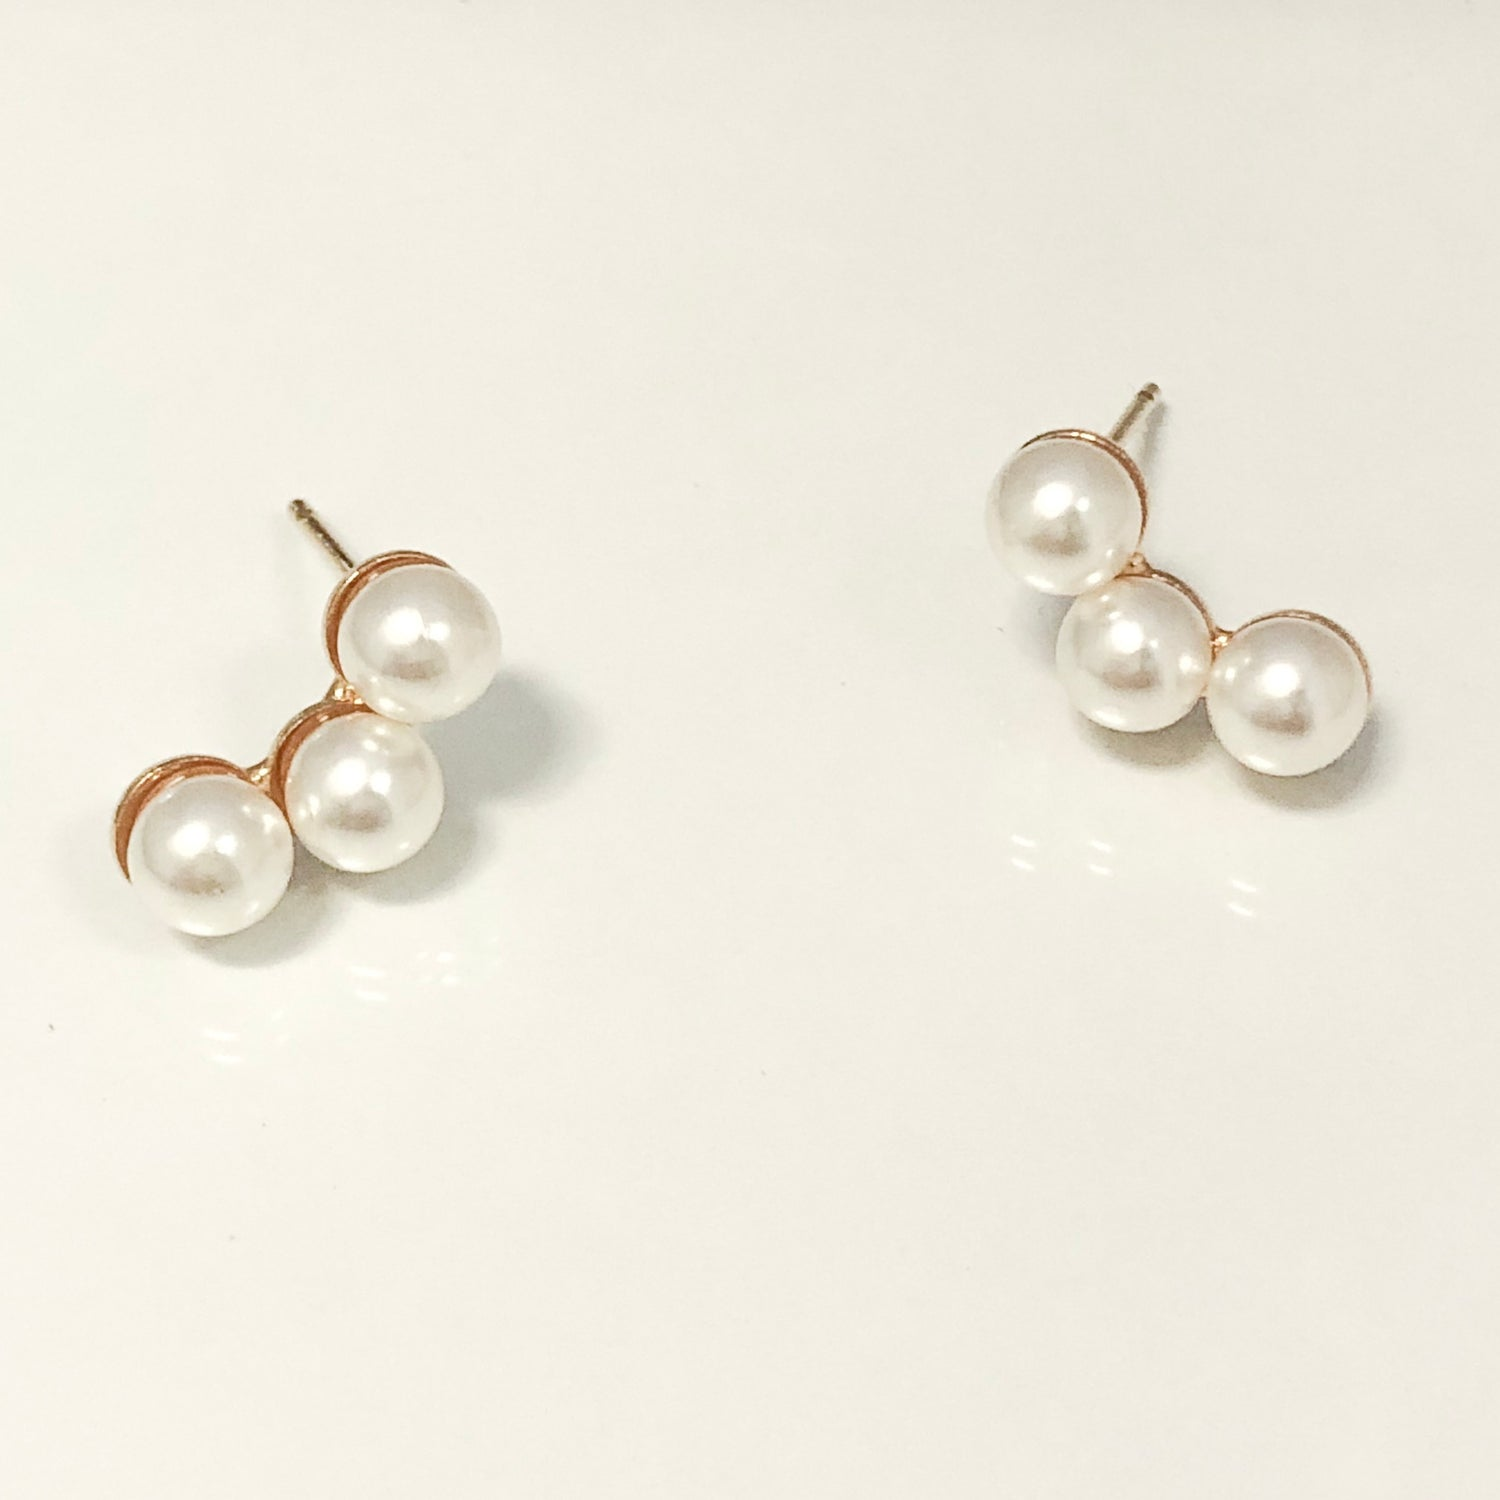 Samantha Pearl Ear Crawler Stud Earrings